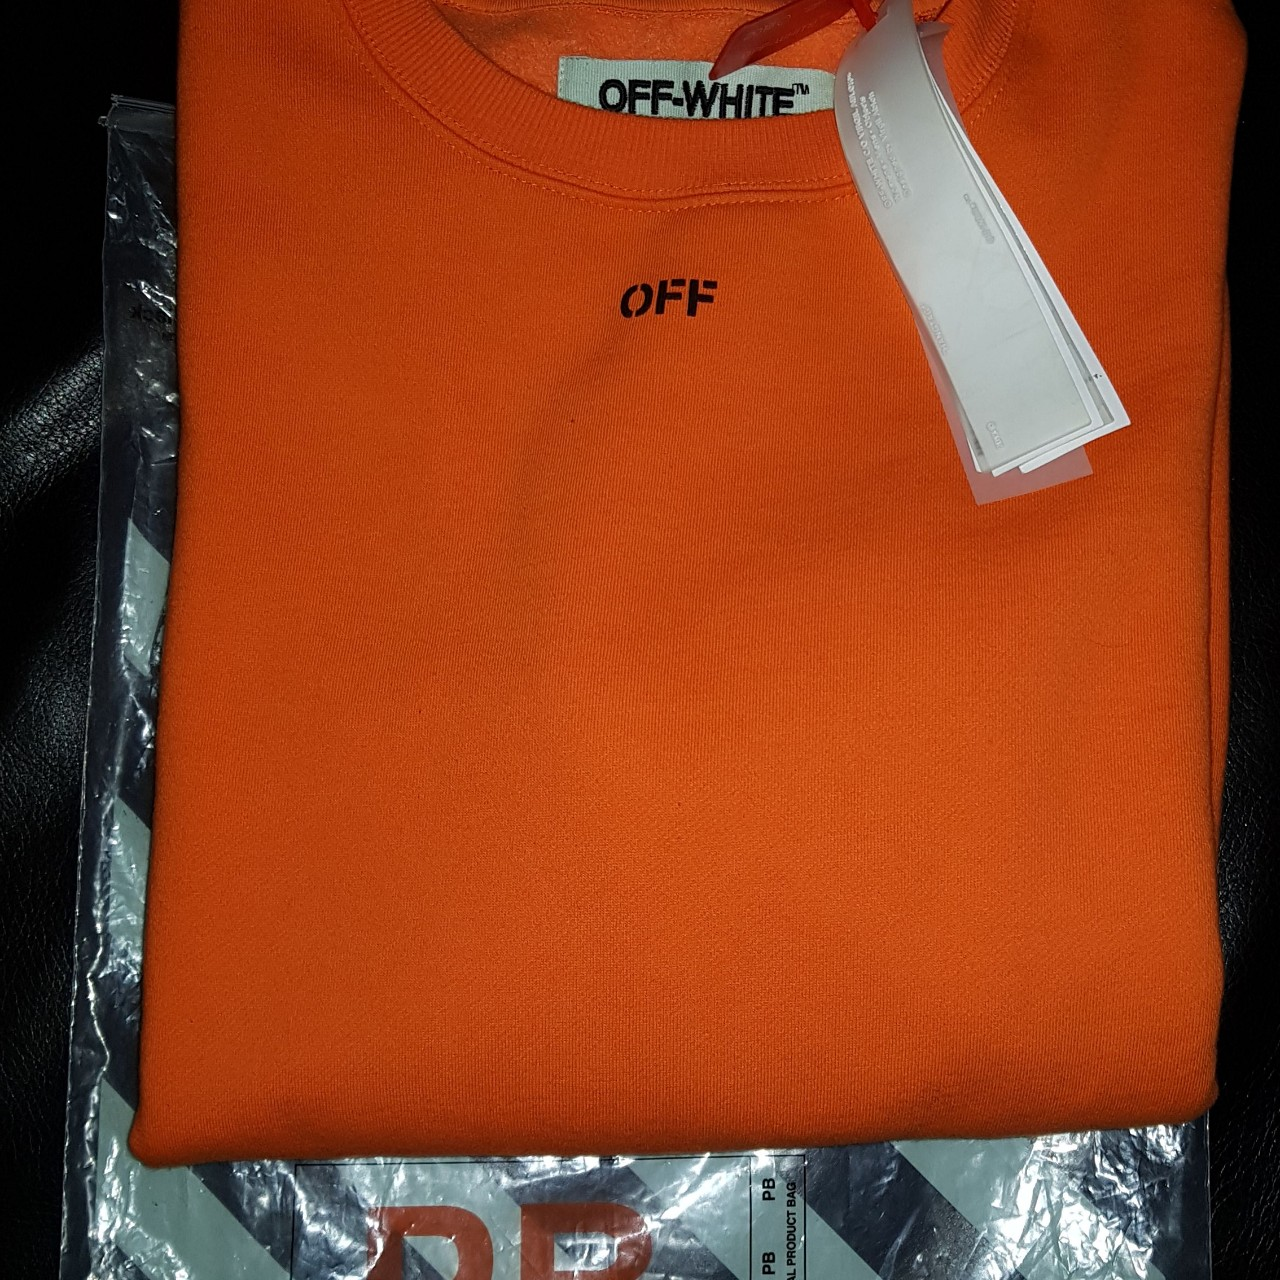 OFF WHITE X VLONE CREWNECK VERY RARE WITH ALL